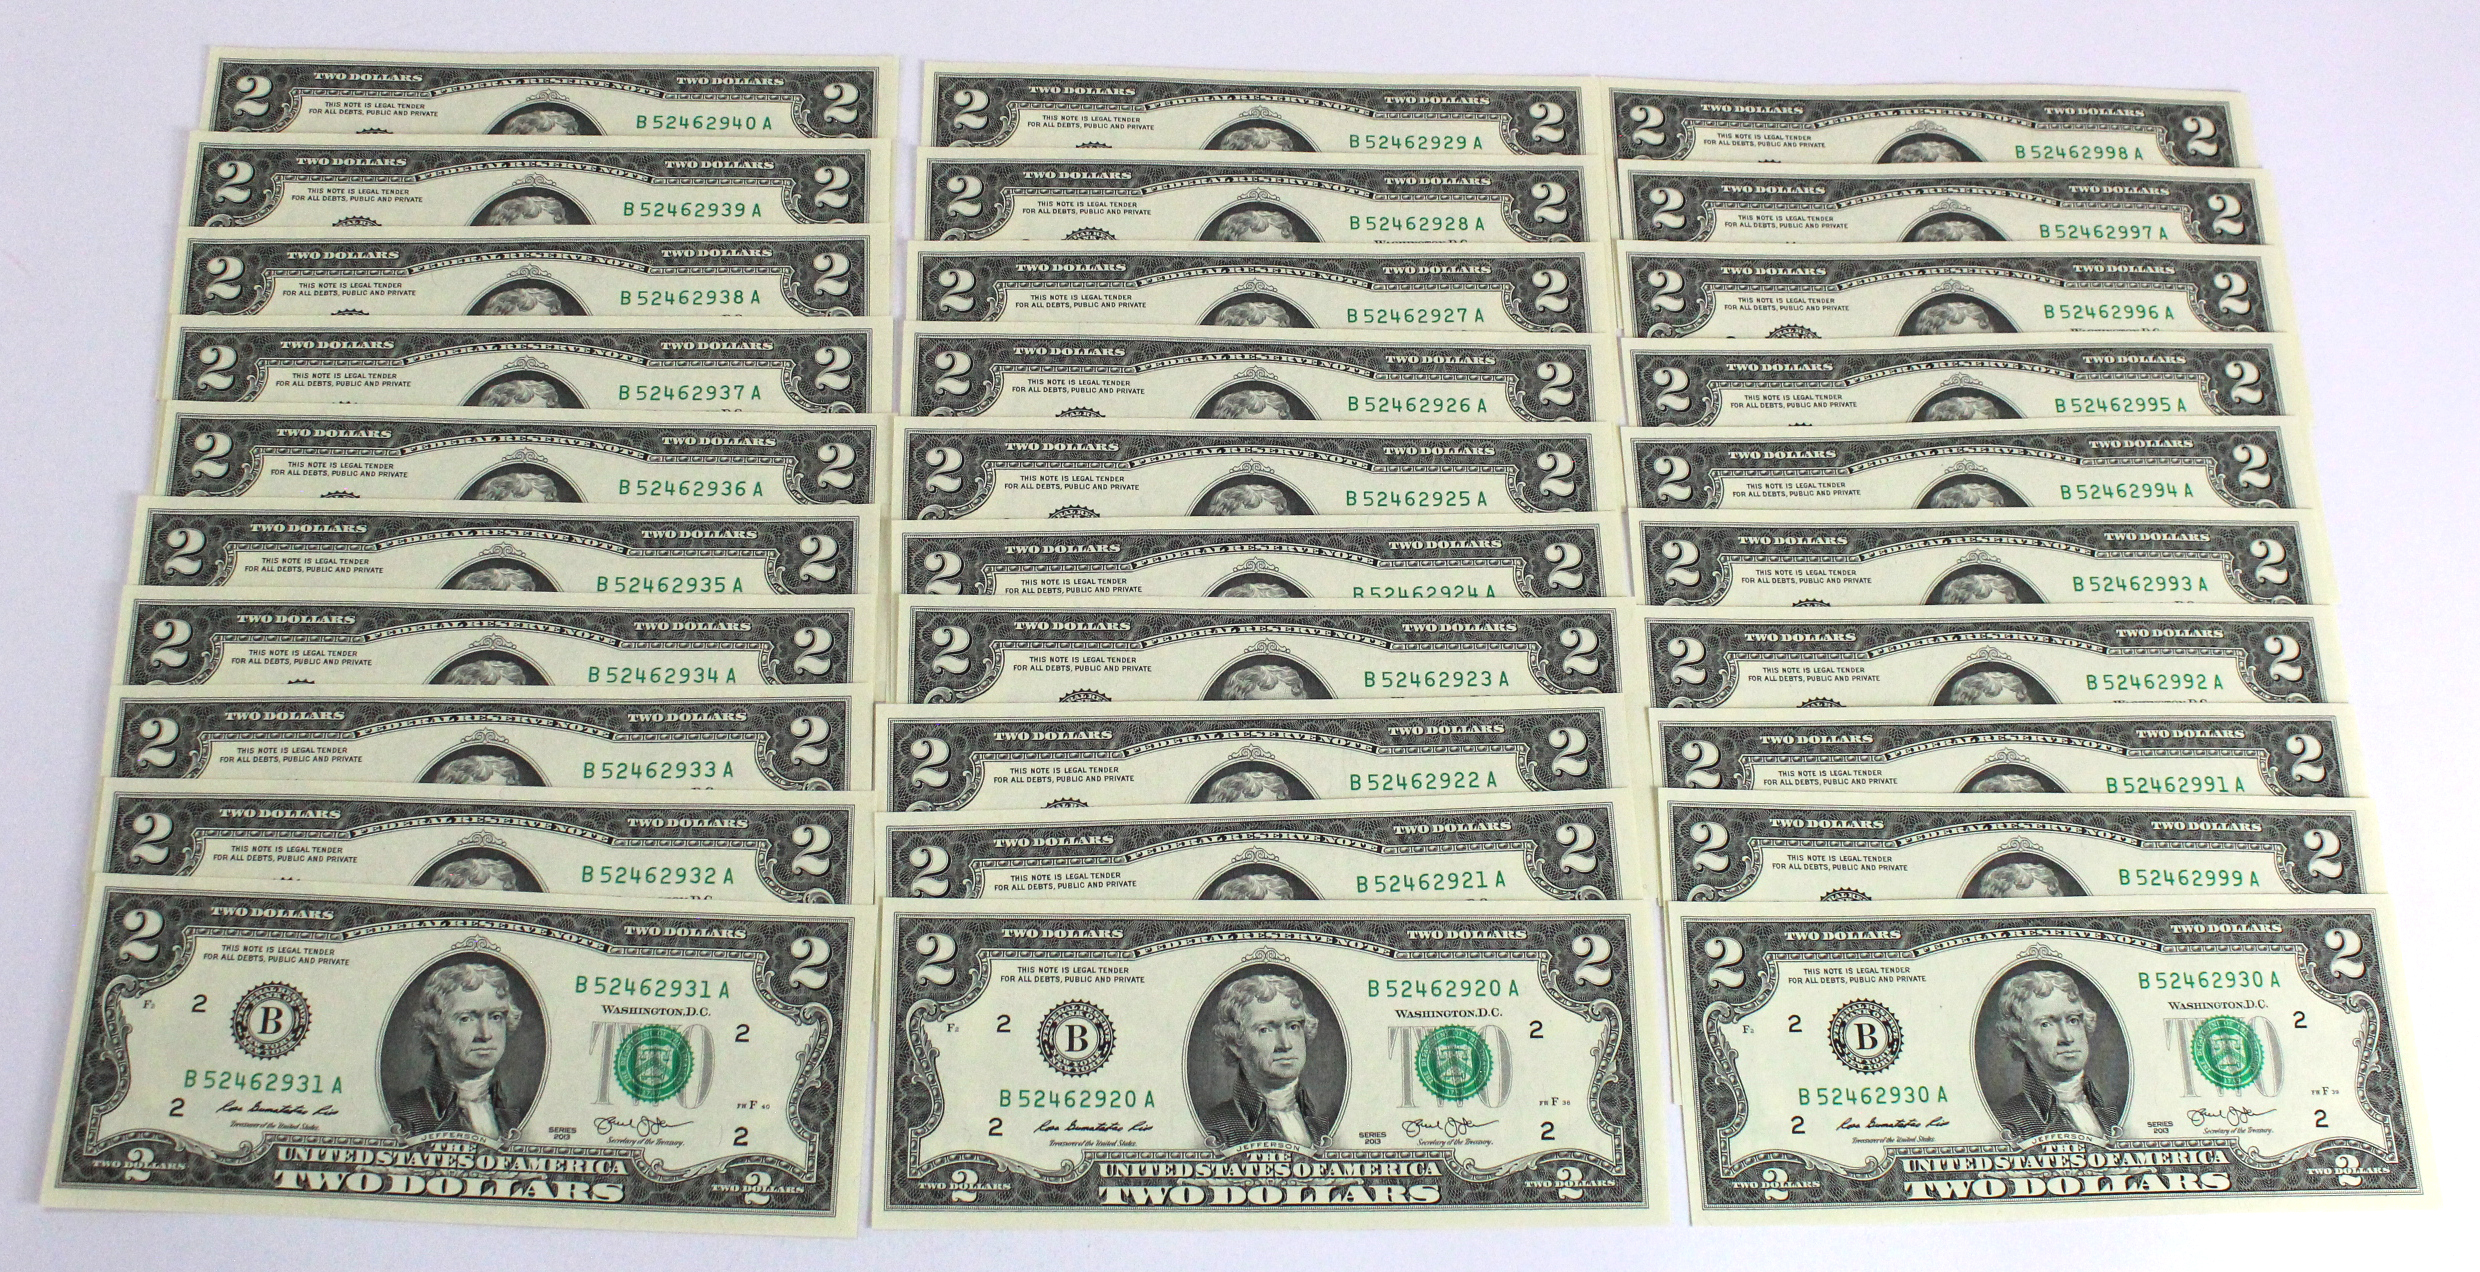 USA 2 Dollars (30) dated 2013, in 2 consecutively numbered runs, serial B52462920A - B52462940A